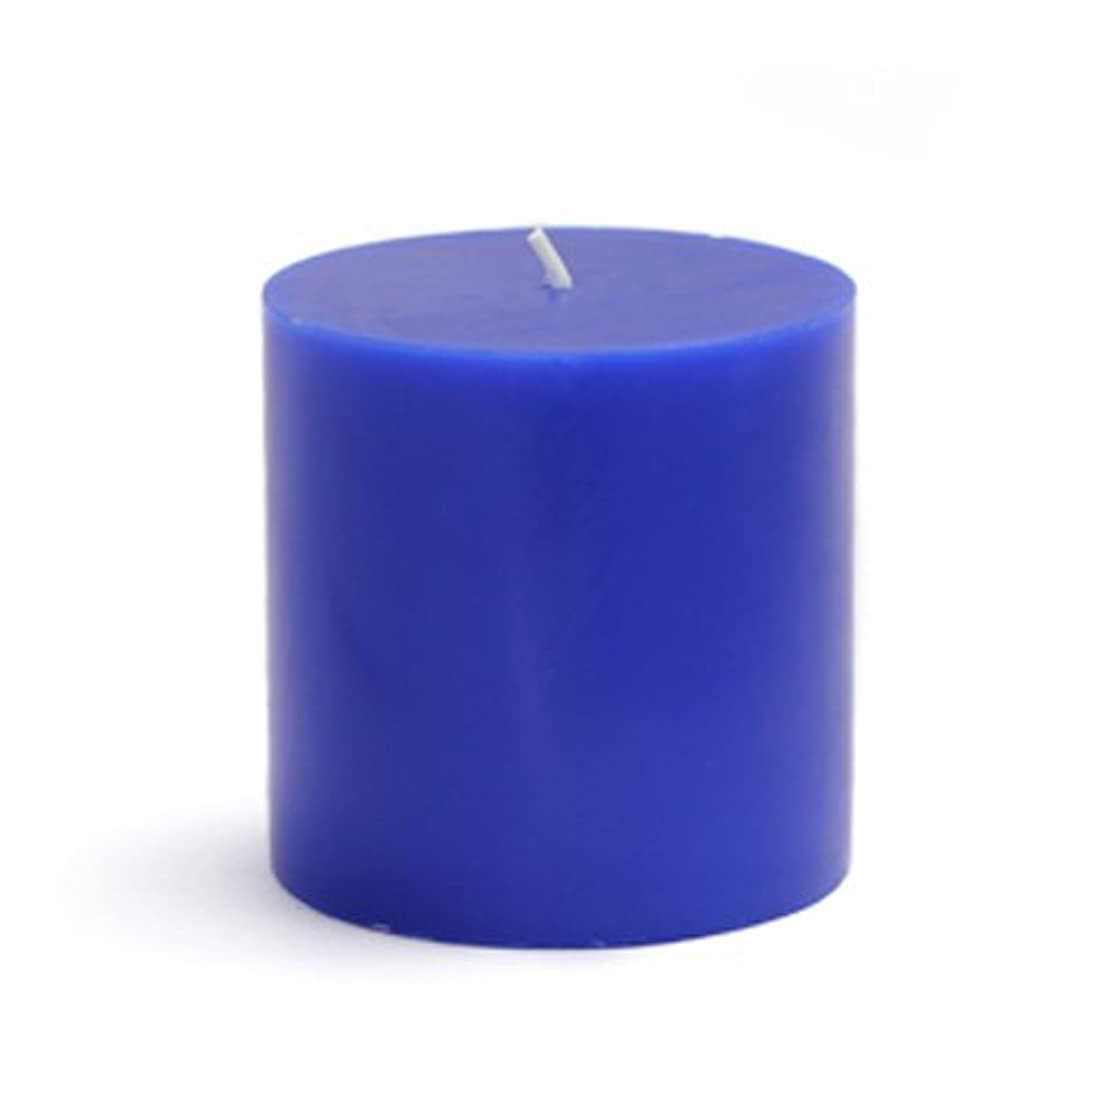 乗り出すライオンシティZest Candle CPZ-077-12 3 x 3 in. Blue Pillar Candles -12pcs-Case- Bulk